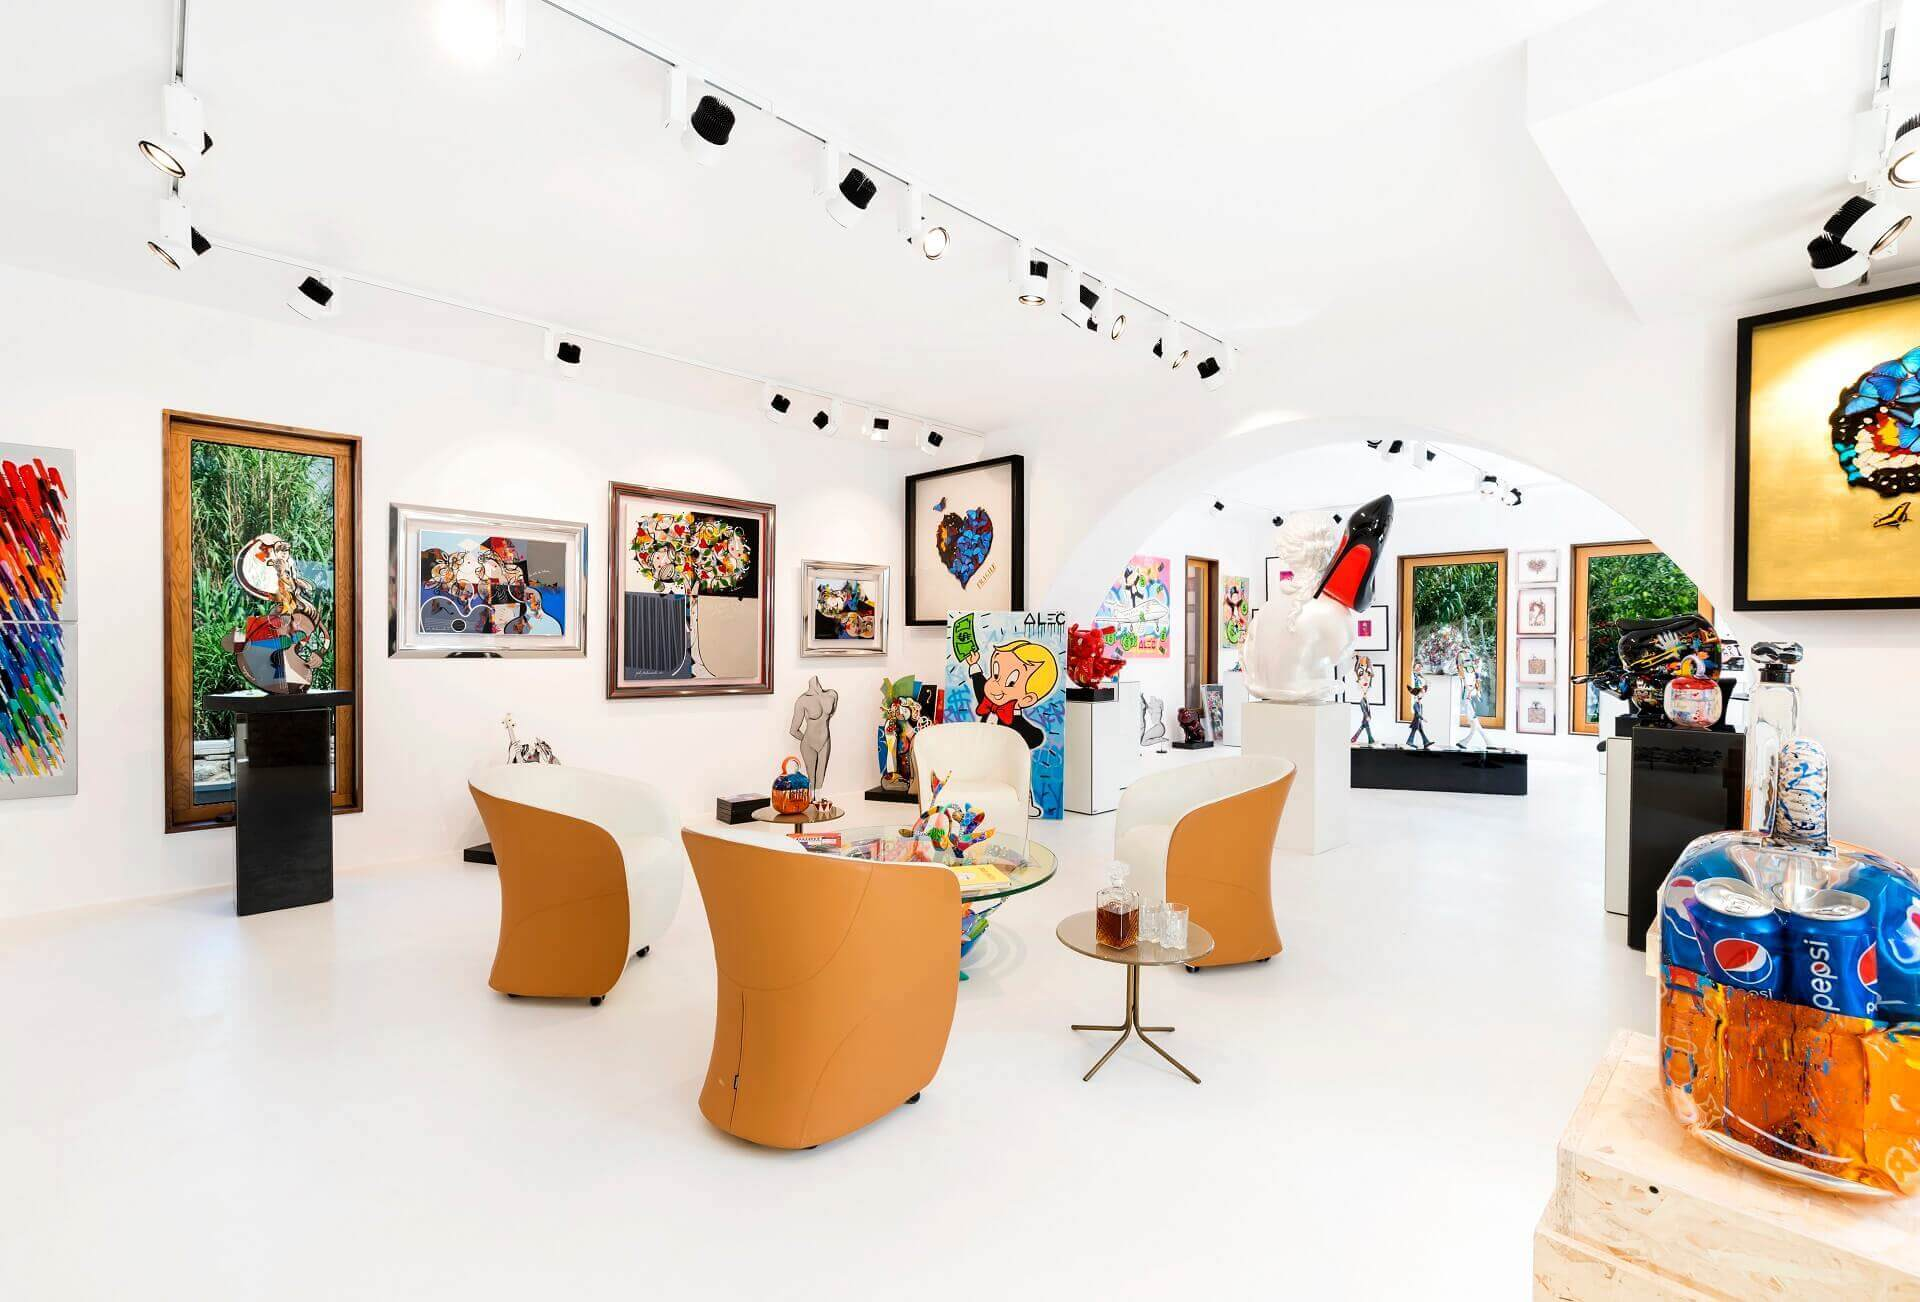 TOP 7 ISPIRATIONAL AND CONTEMPORARY ART GALLERIES IN MYKONOS